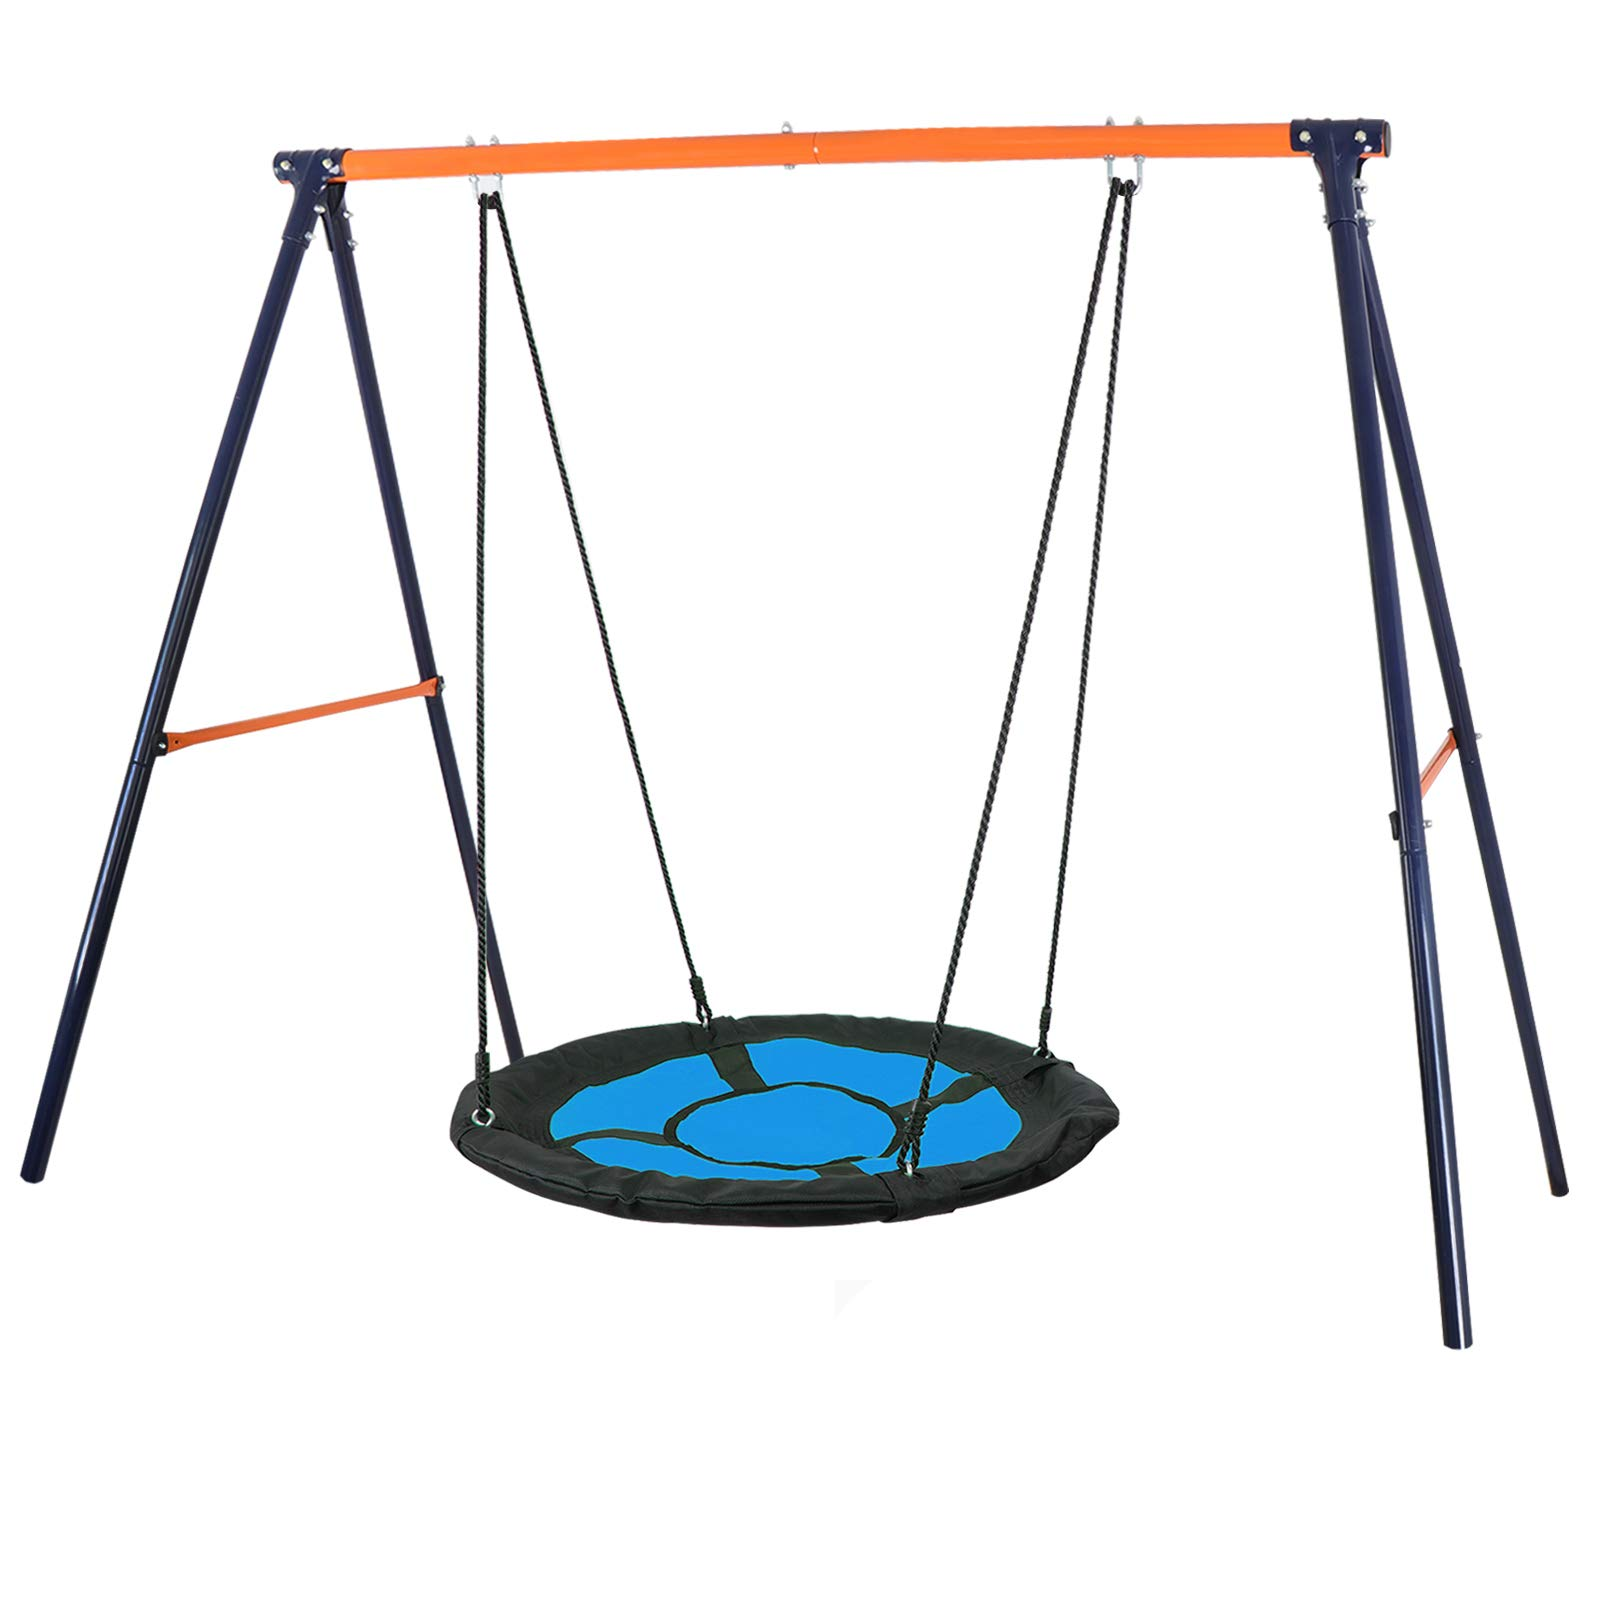 SUPER DEAL Swing Set, 40'' Kids Web Tree Swing Saucer Swing + 72'' All-Steel All Weather Stand Combo (Blue, XXL) by SUPER DEAL